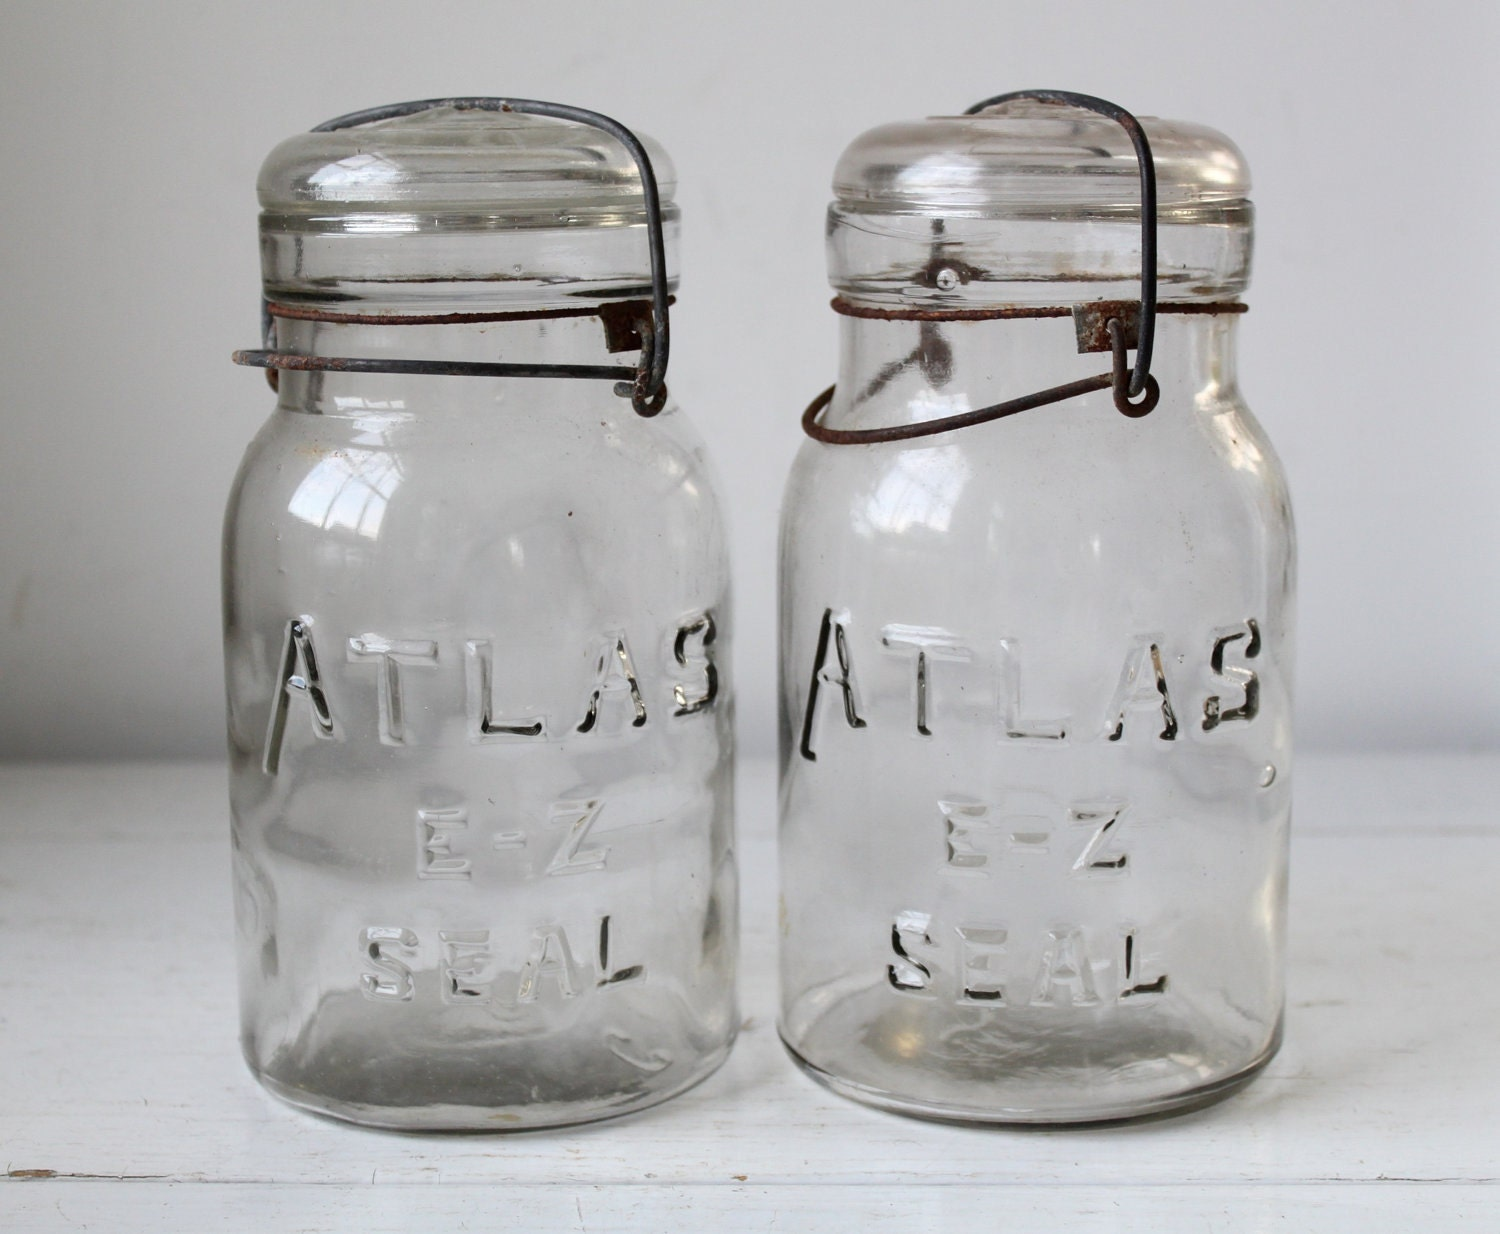 Dating canning jars